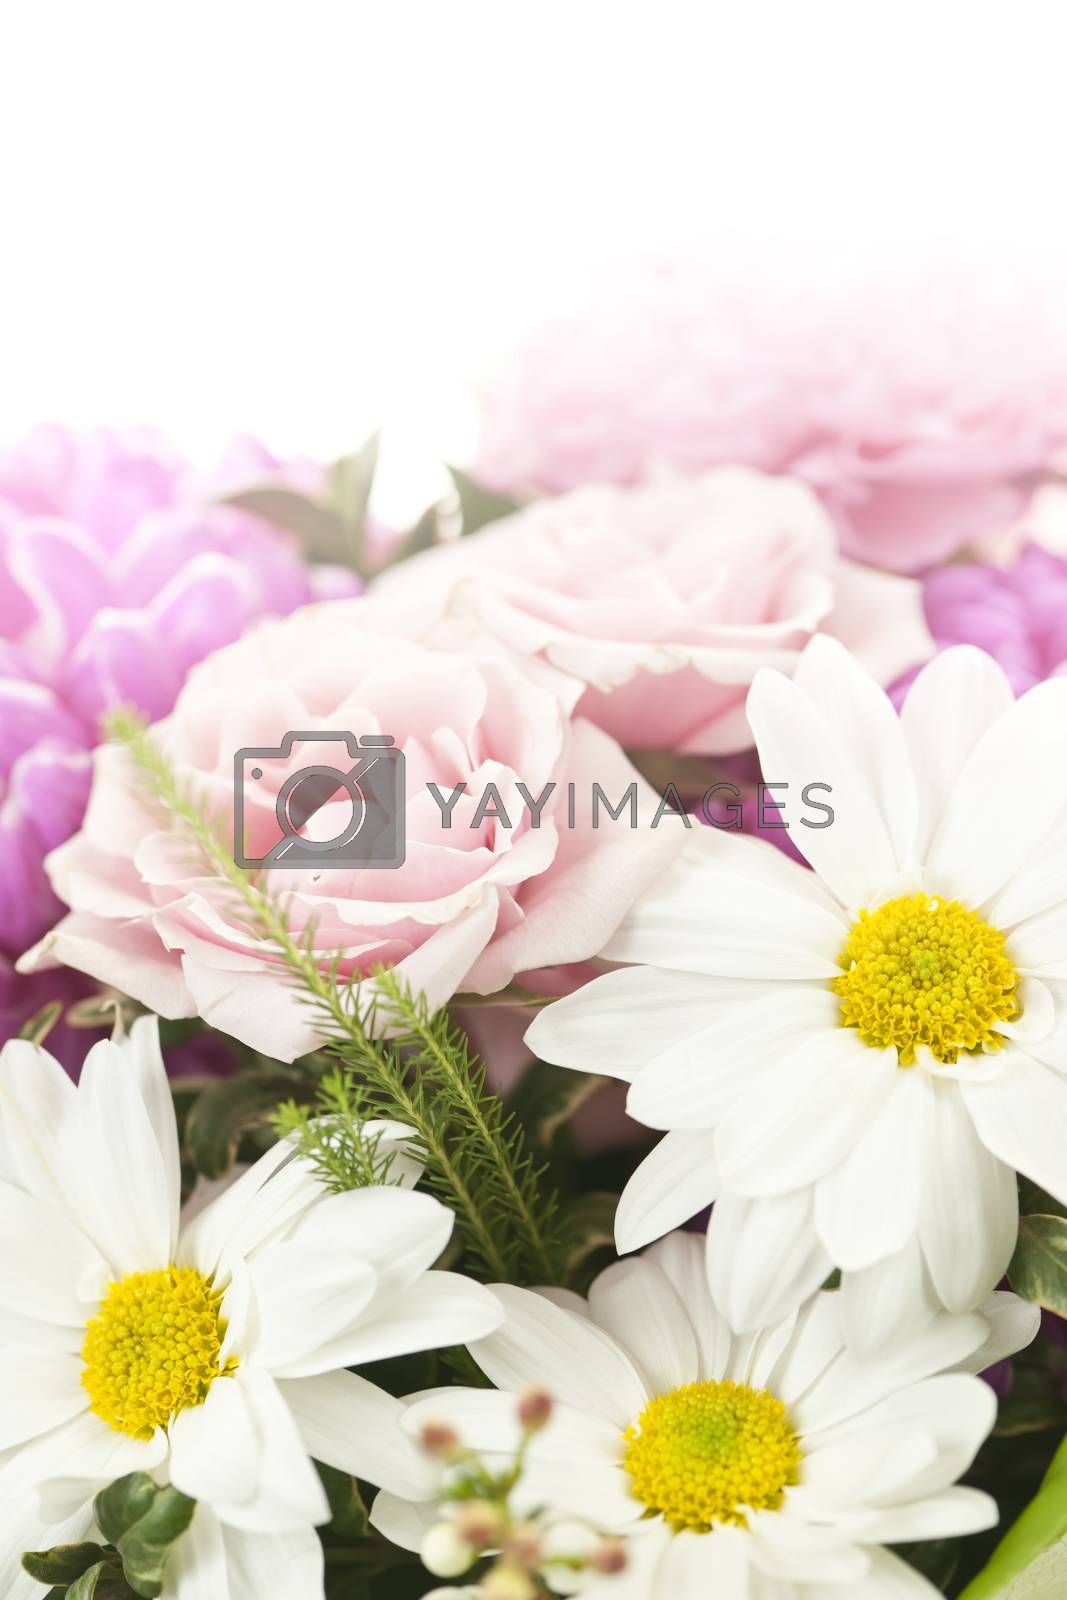 Fading background of flower arrangement with pink and white flowers